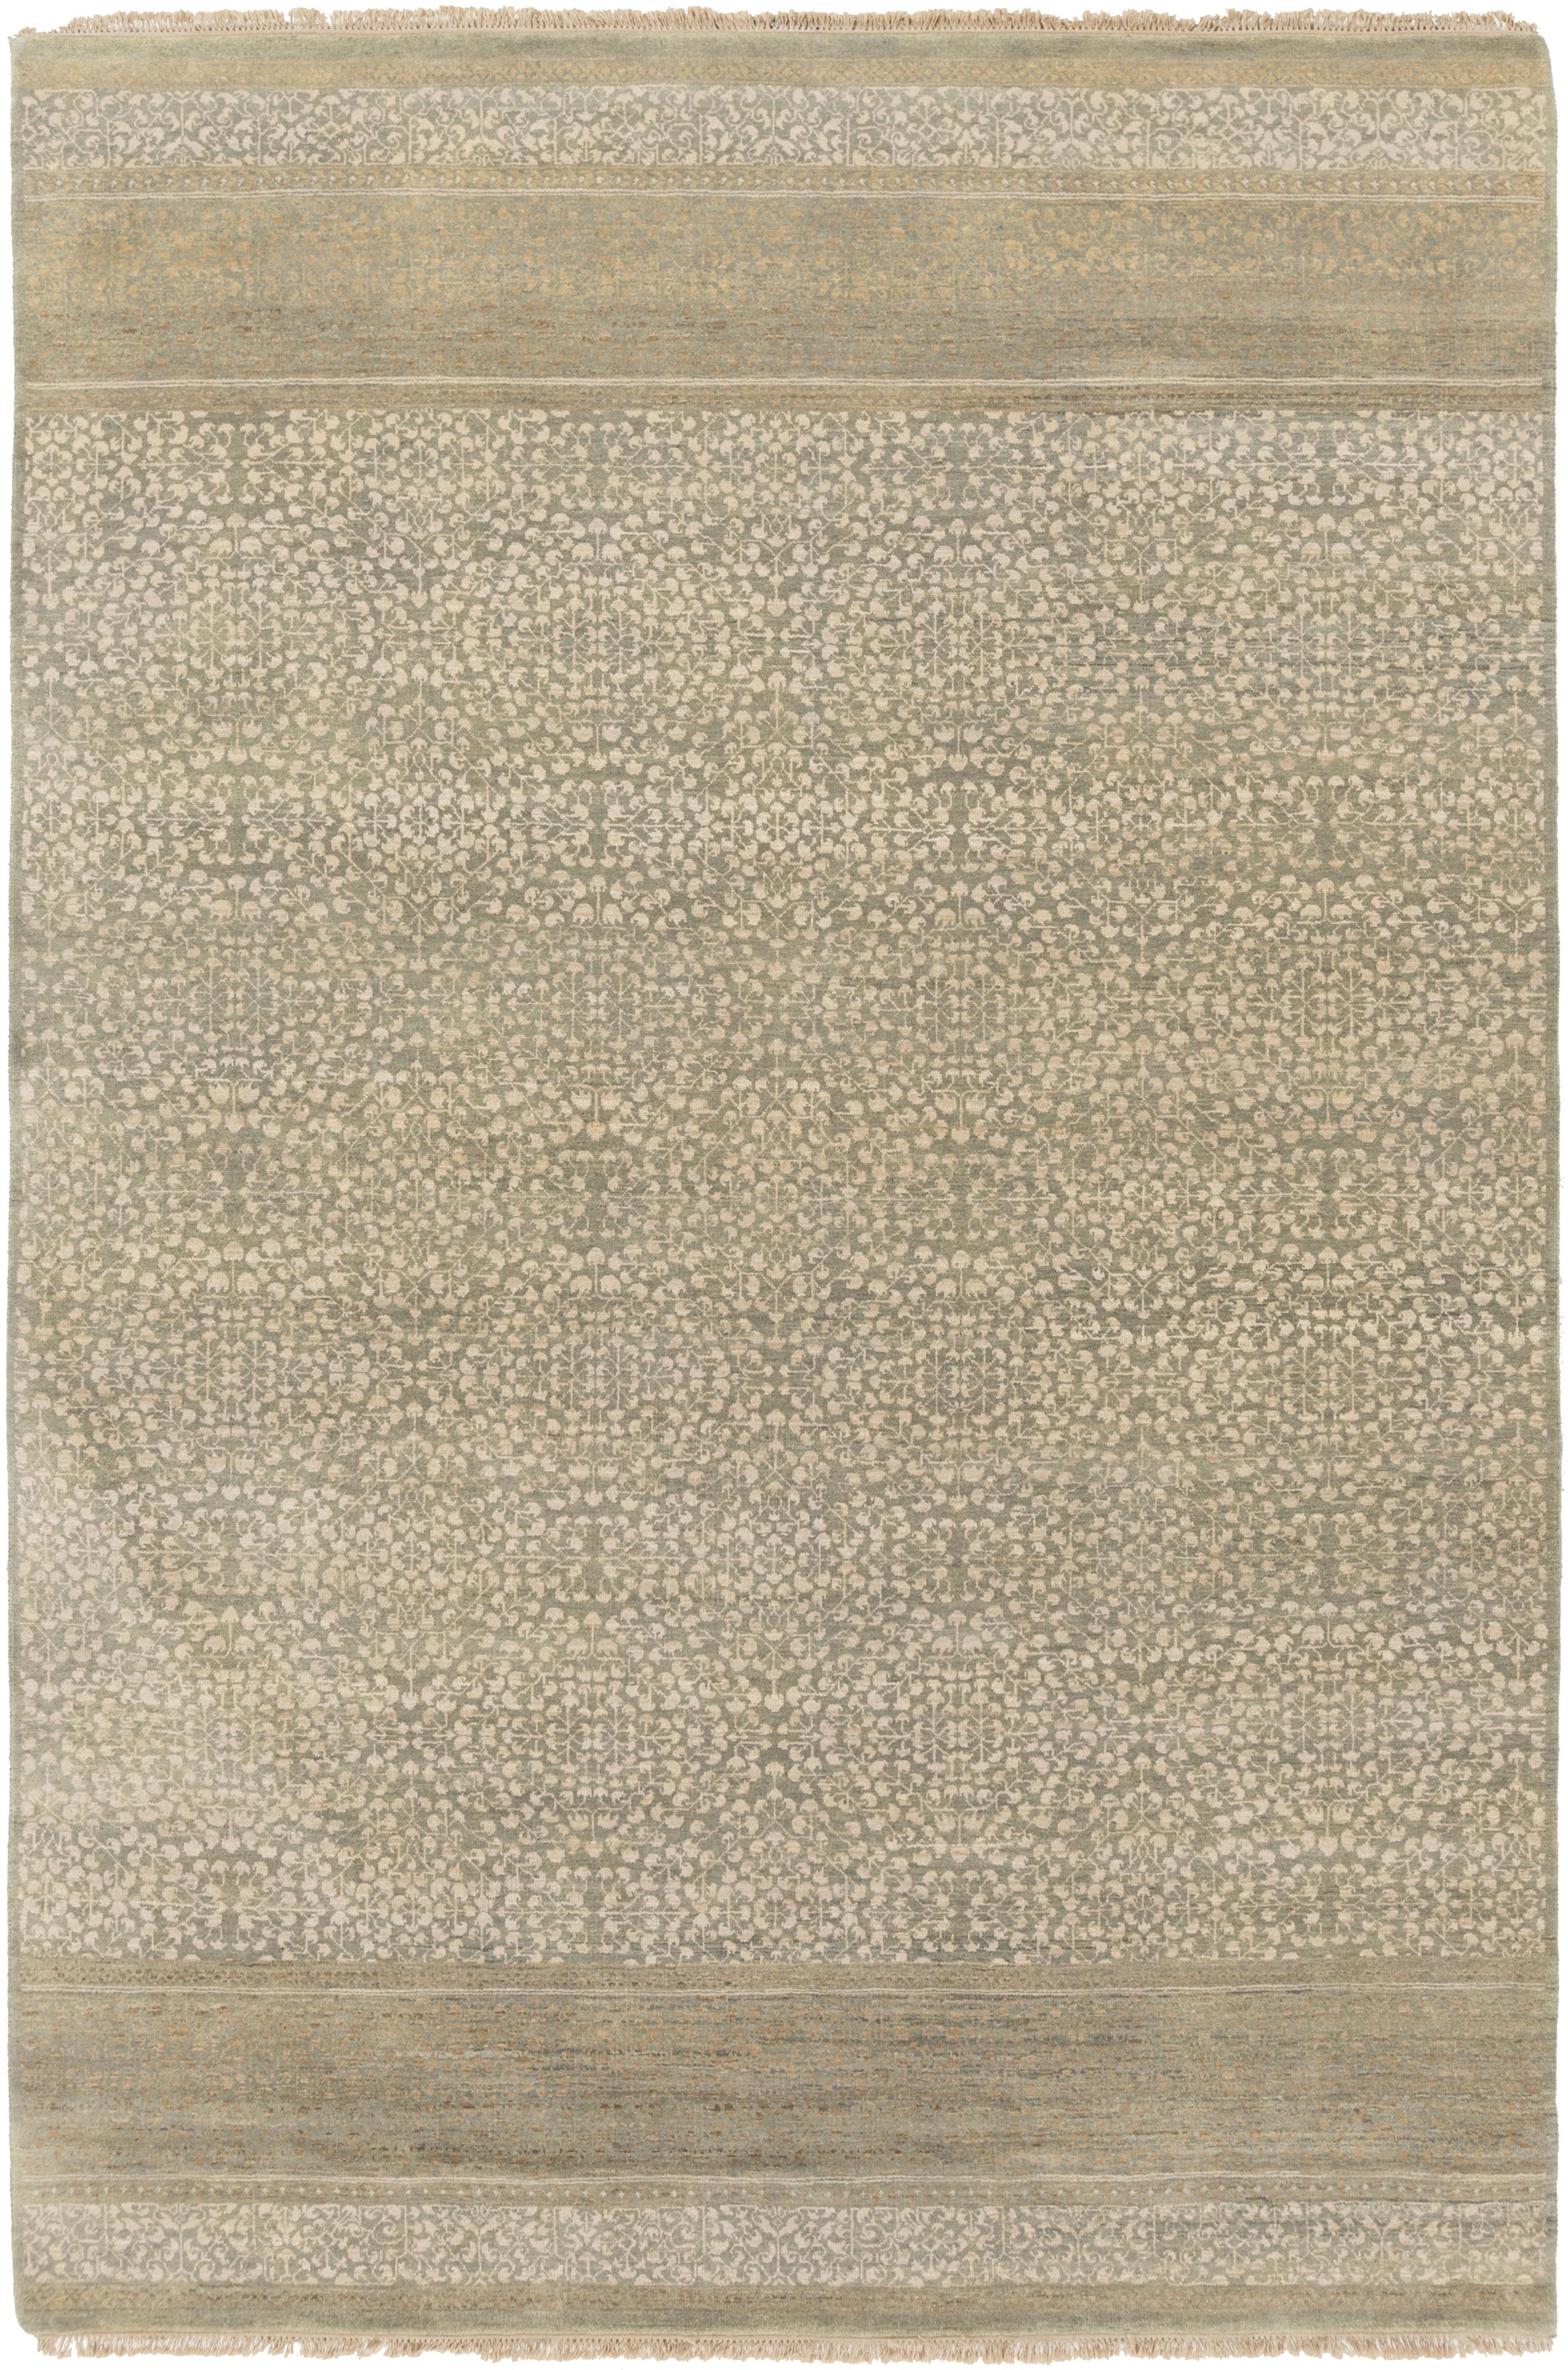 Surya Rugs Palace 2' x 3' - Item Number: PLC1001-23